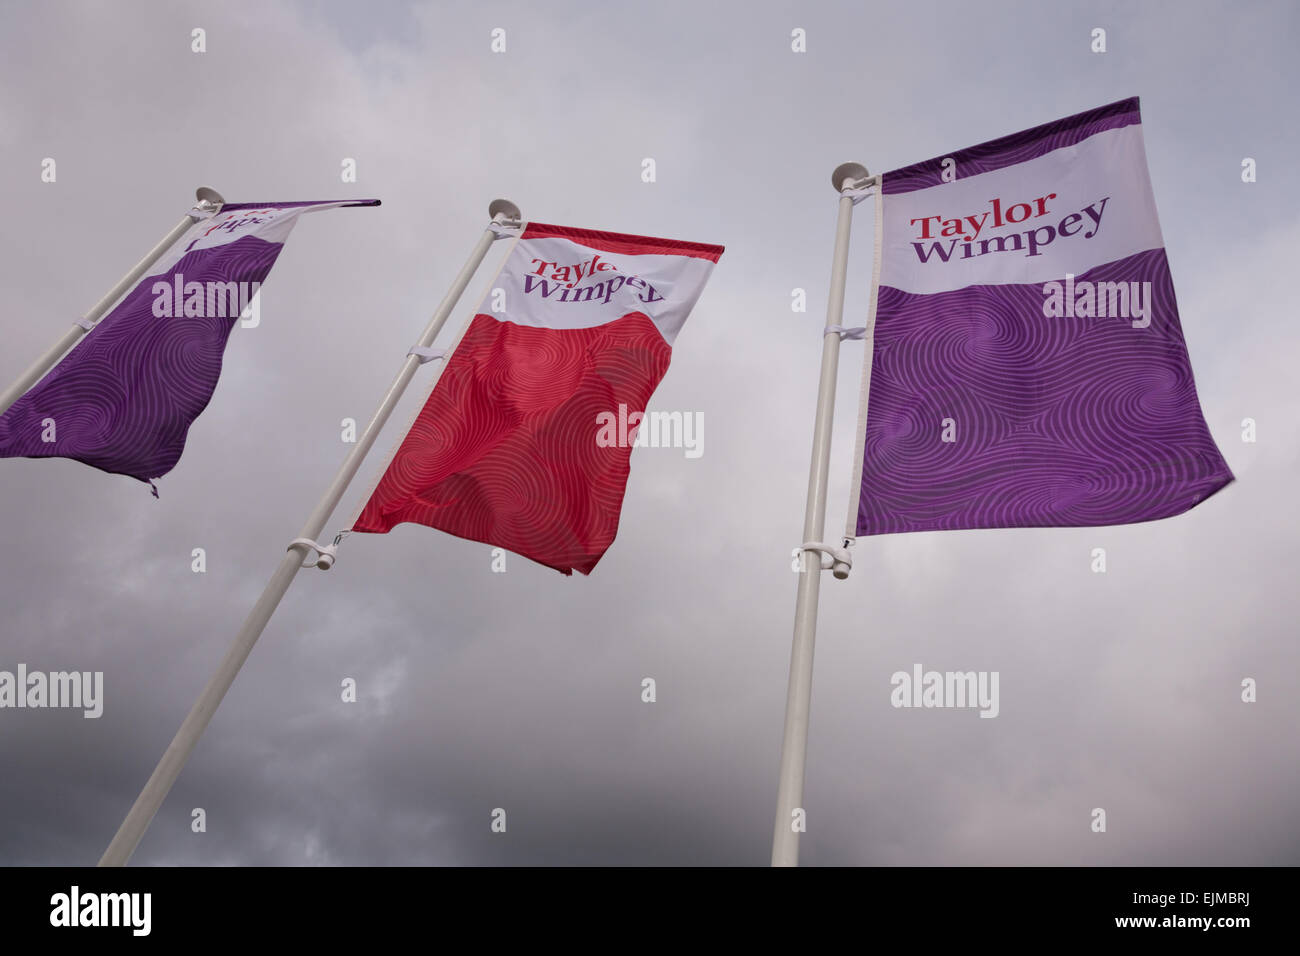 Promotional flags for Taylor Wimpey property developers flying at a new site - Stock Image